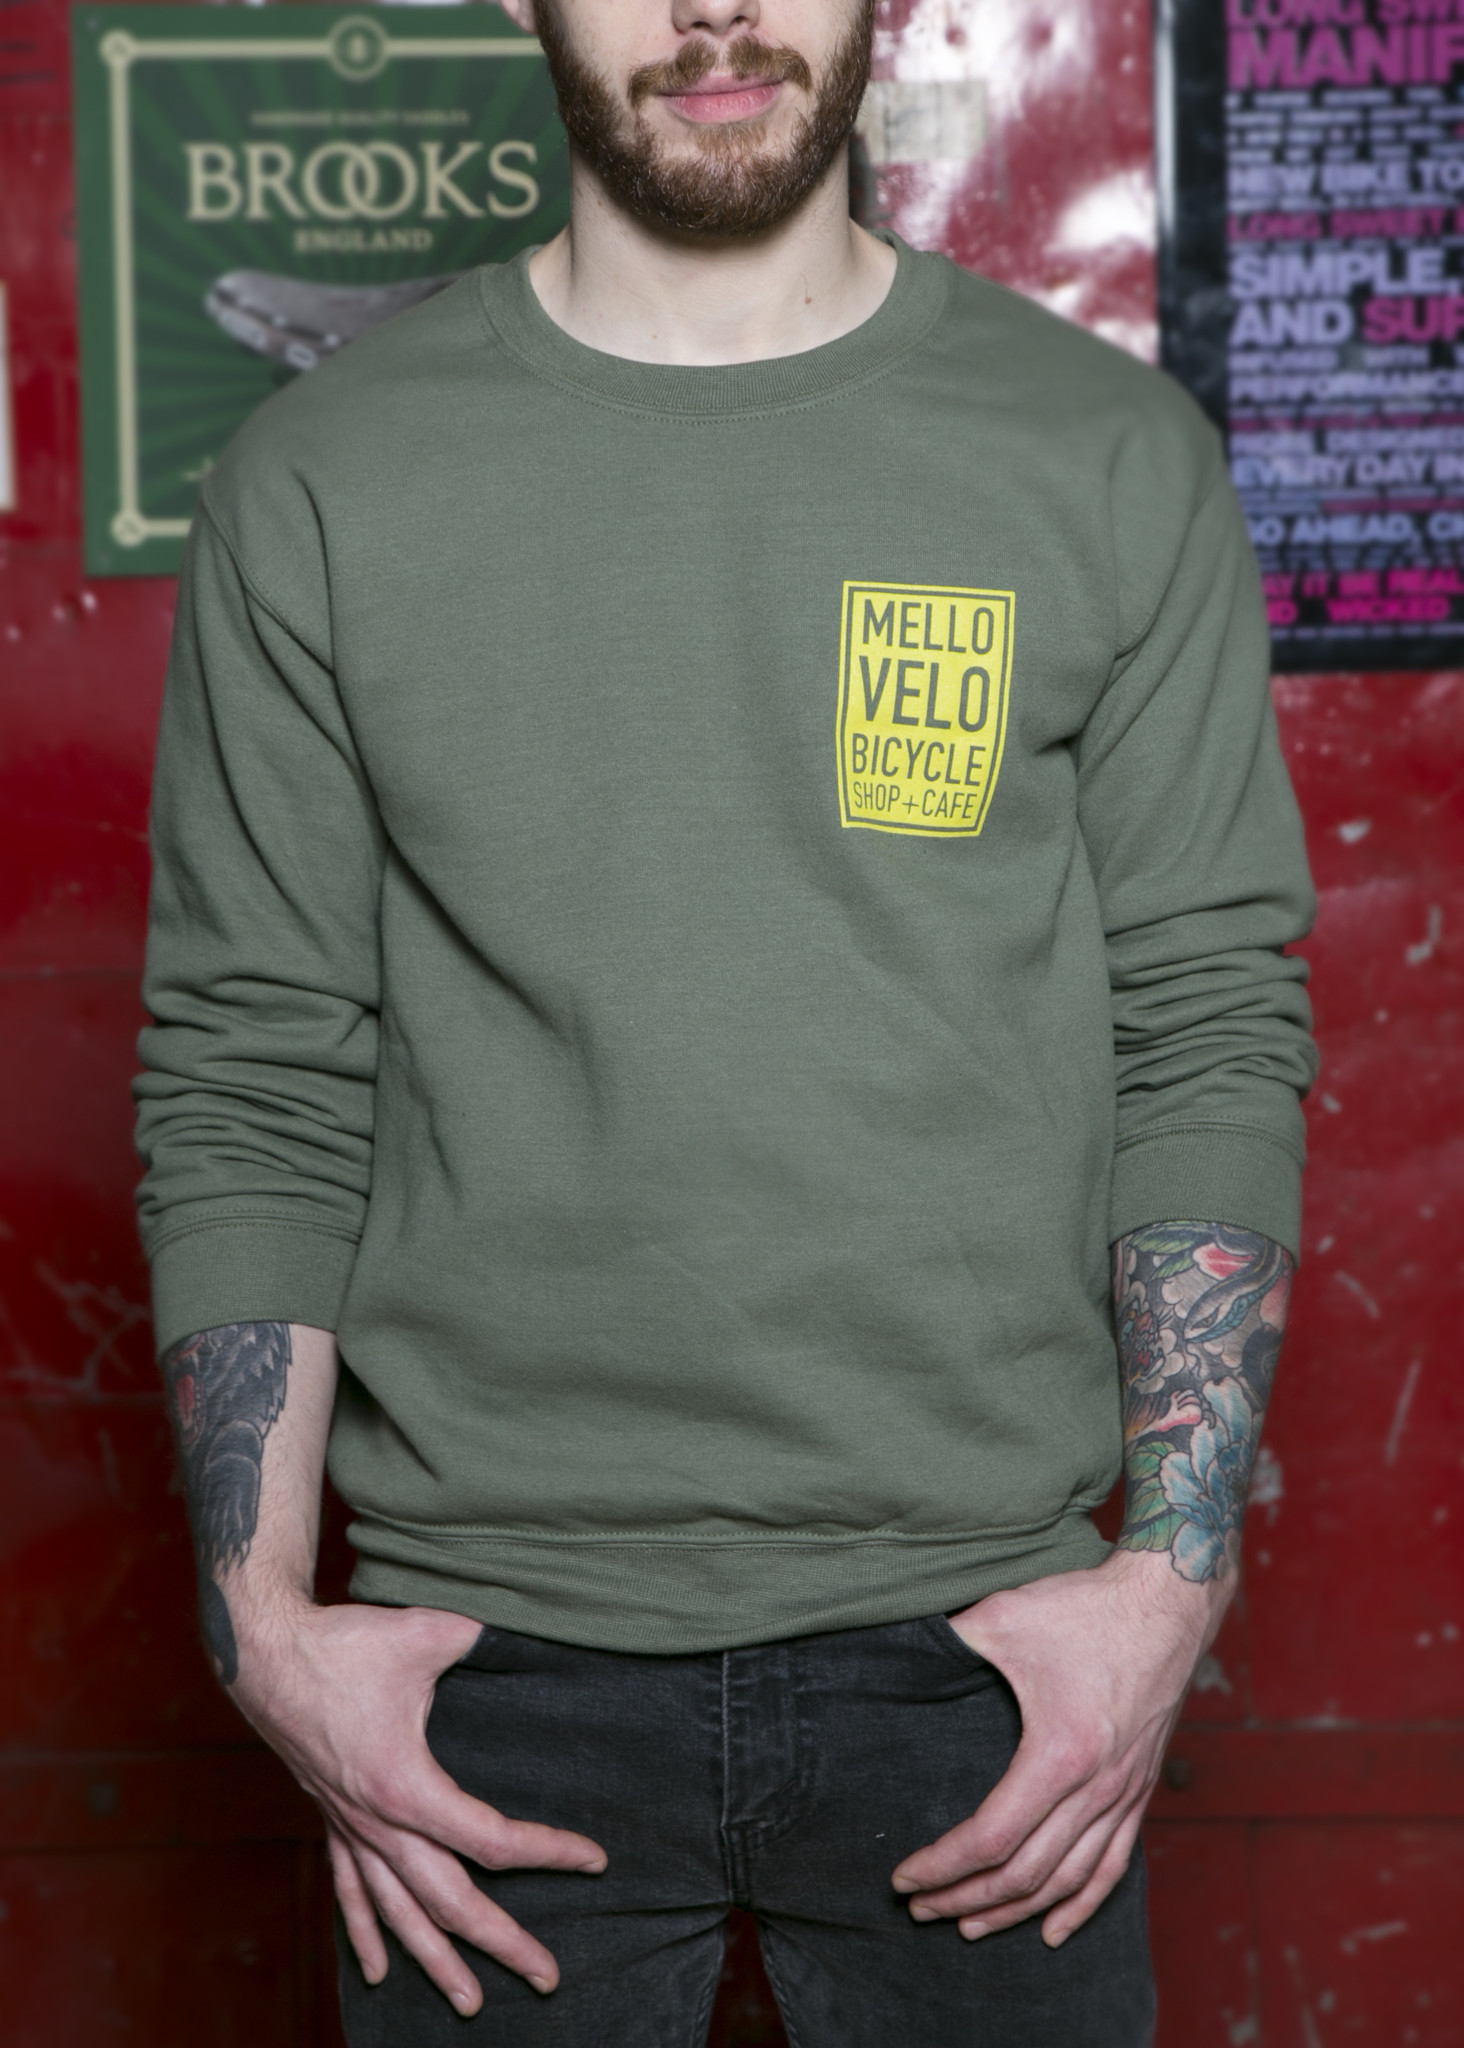 Mello Velo Green Crewneck Sweatshirt